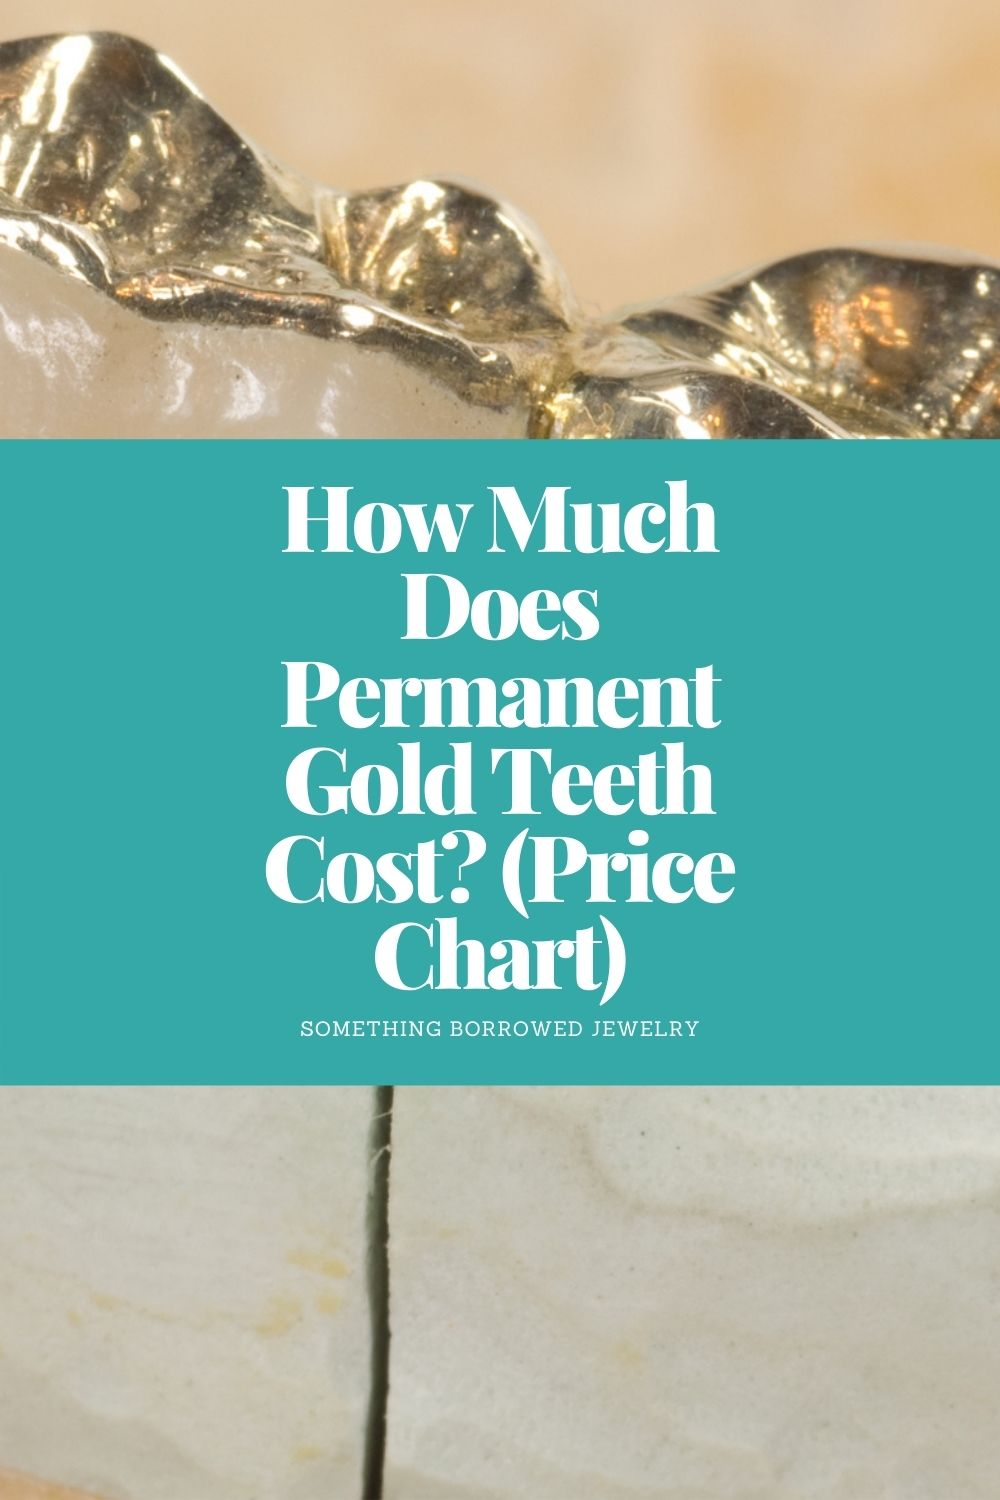 How Much Does Permanent Gold Teeth Cost (Price Chart) pin 2